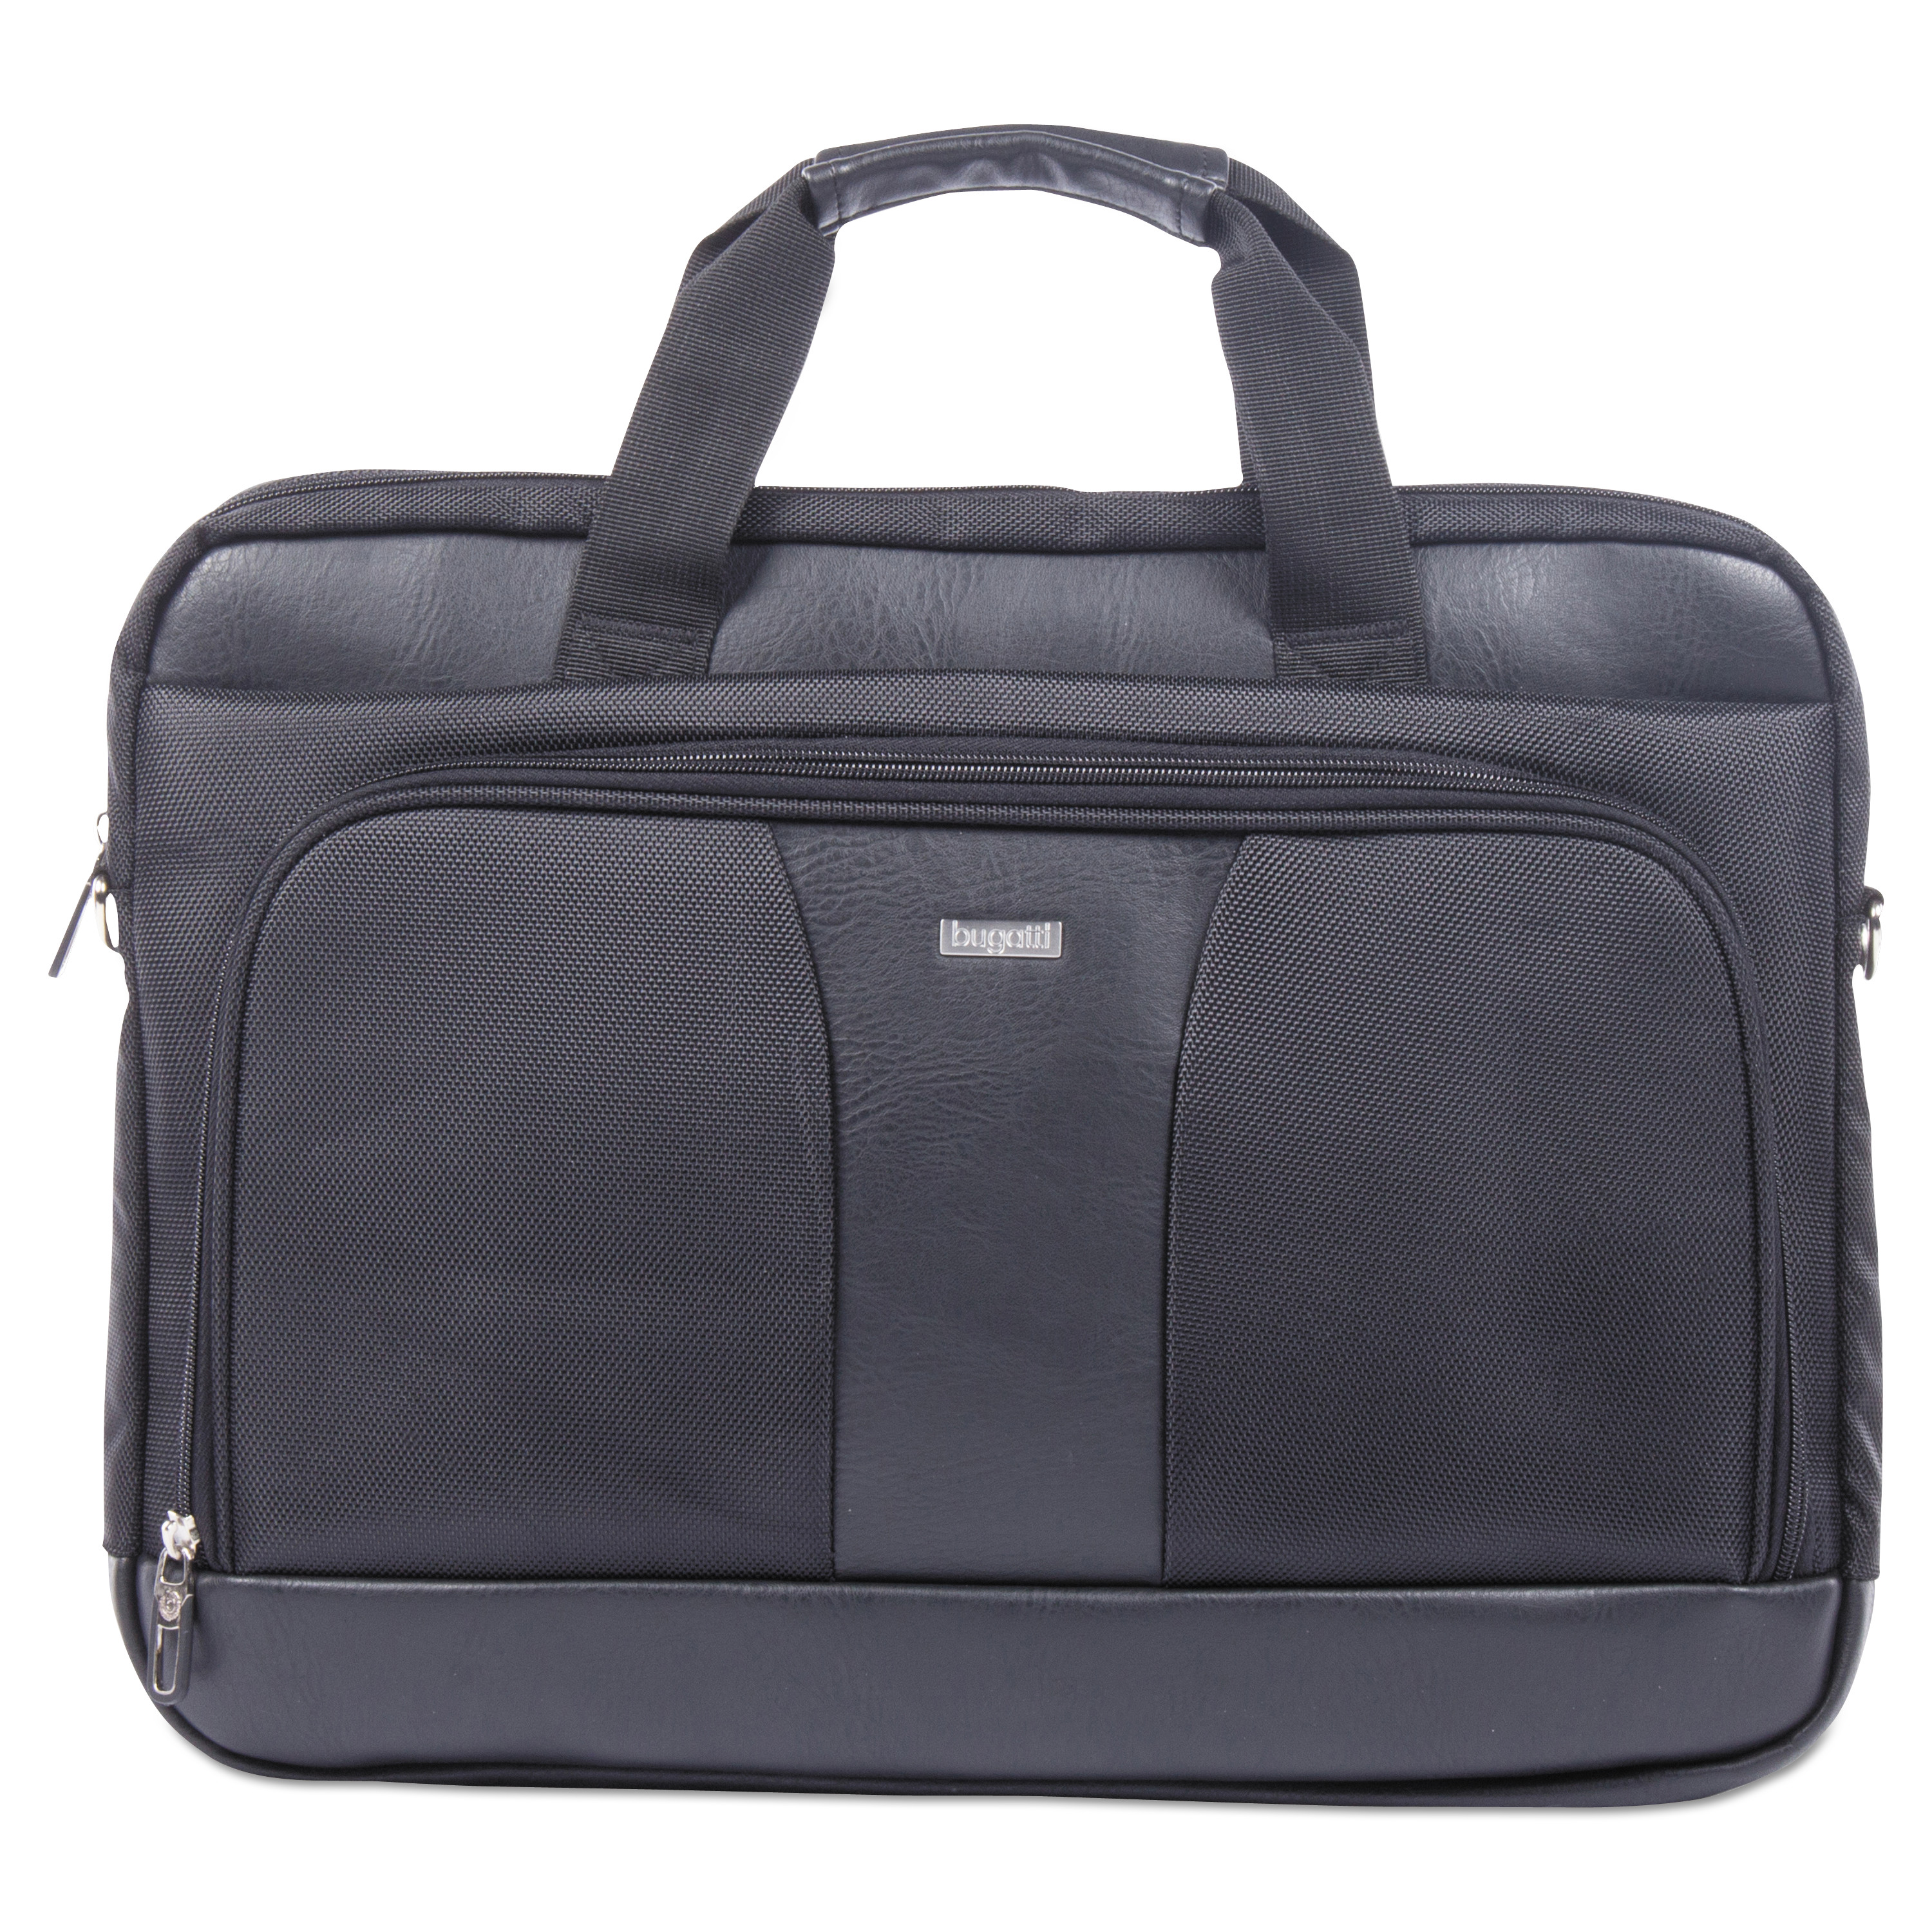 Gregory Executive Briefcase, 18 x 9 x 18, Nylon/Synthetic Leather, Black -BUGEXB526